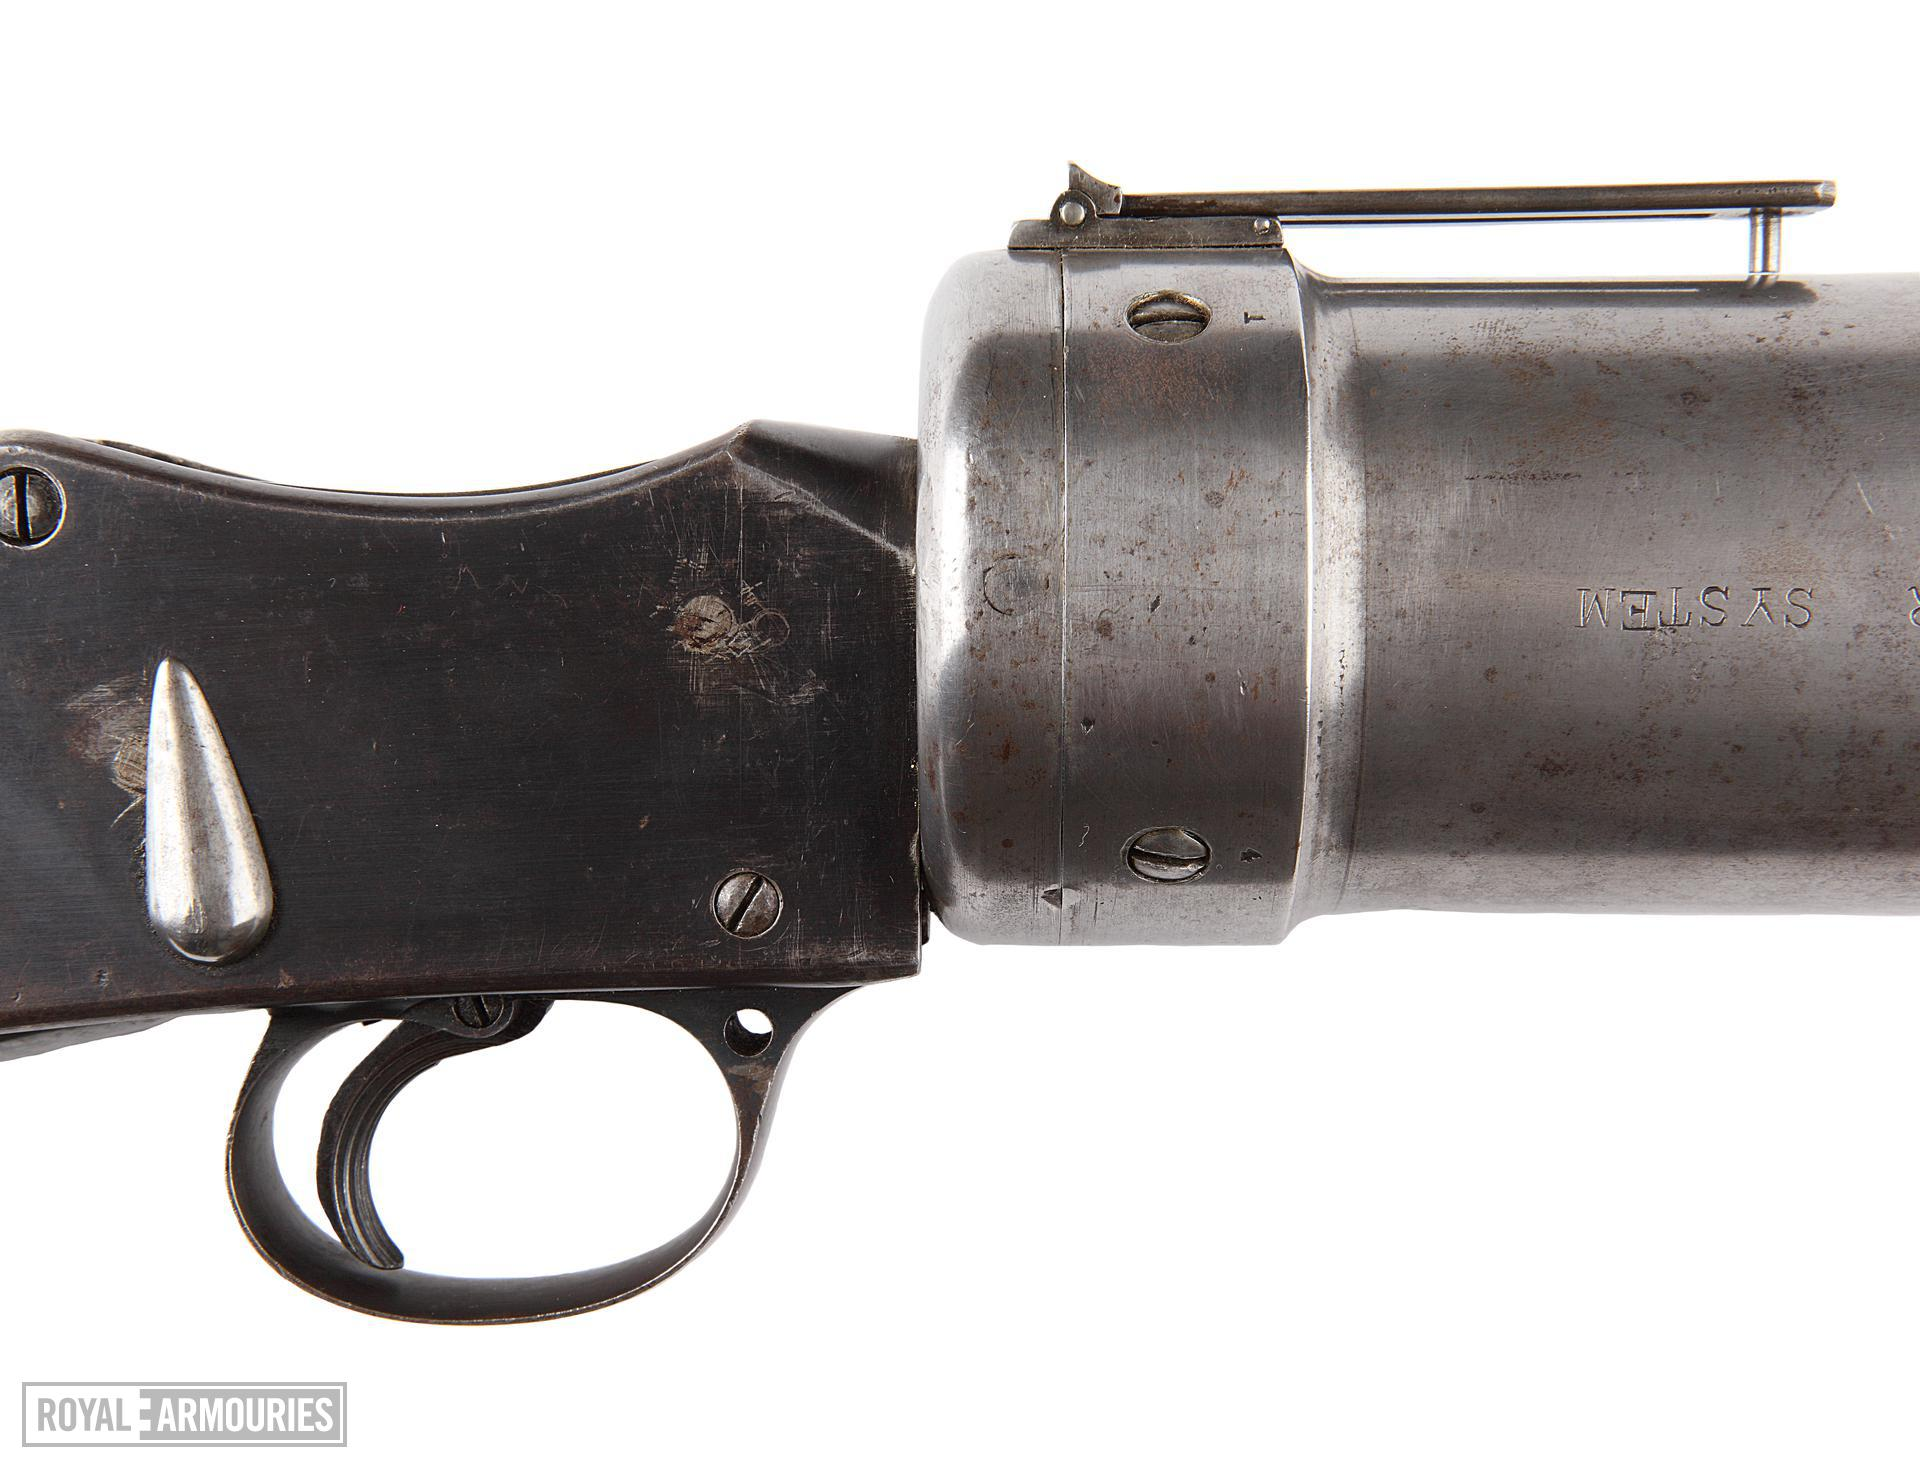 Experimental grenade discharger, •Blanch-Chevallierê with Martini-Henry action, British, 1916